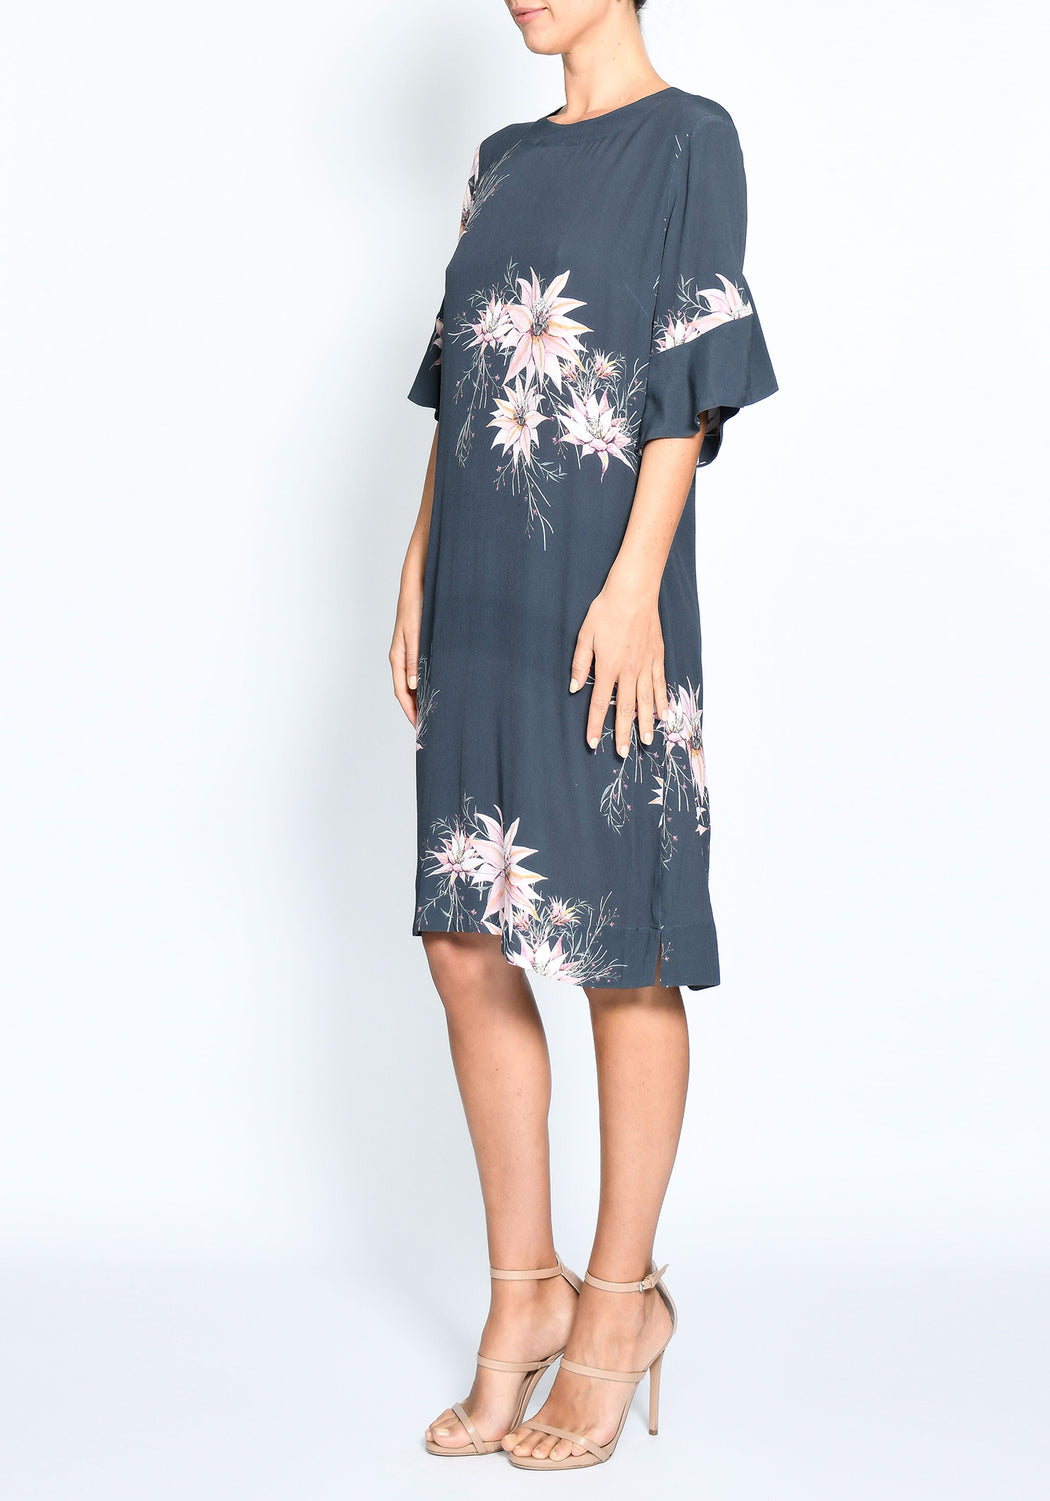 Desert Flower Ruffle Shift Dress